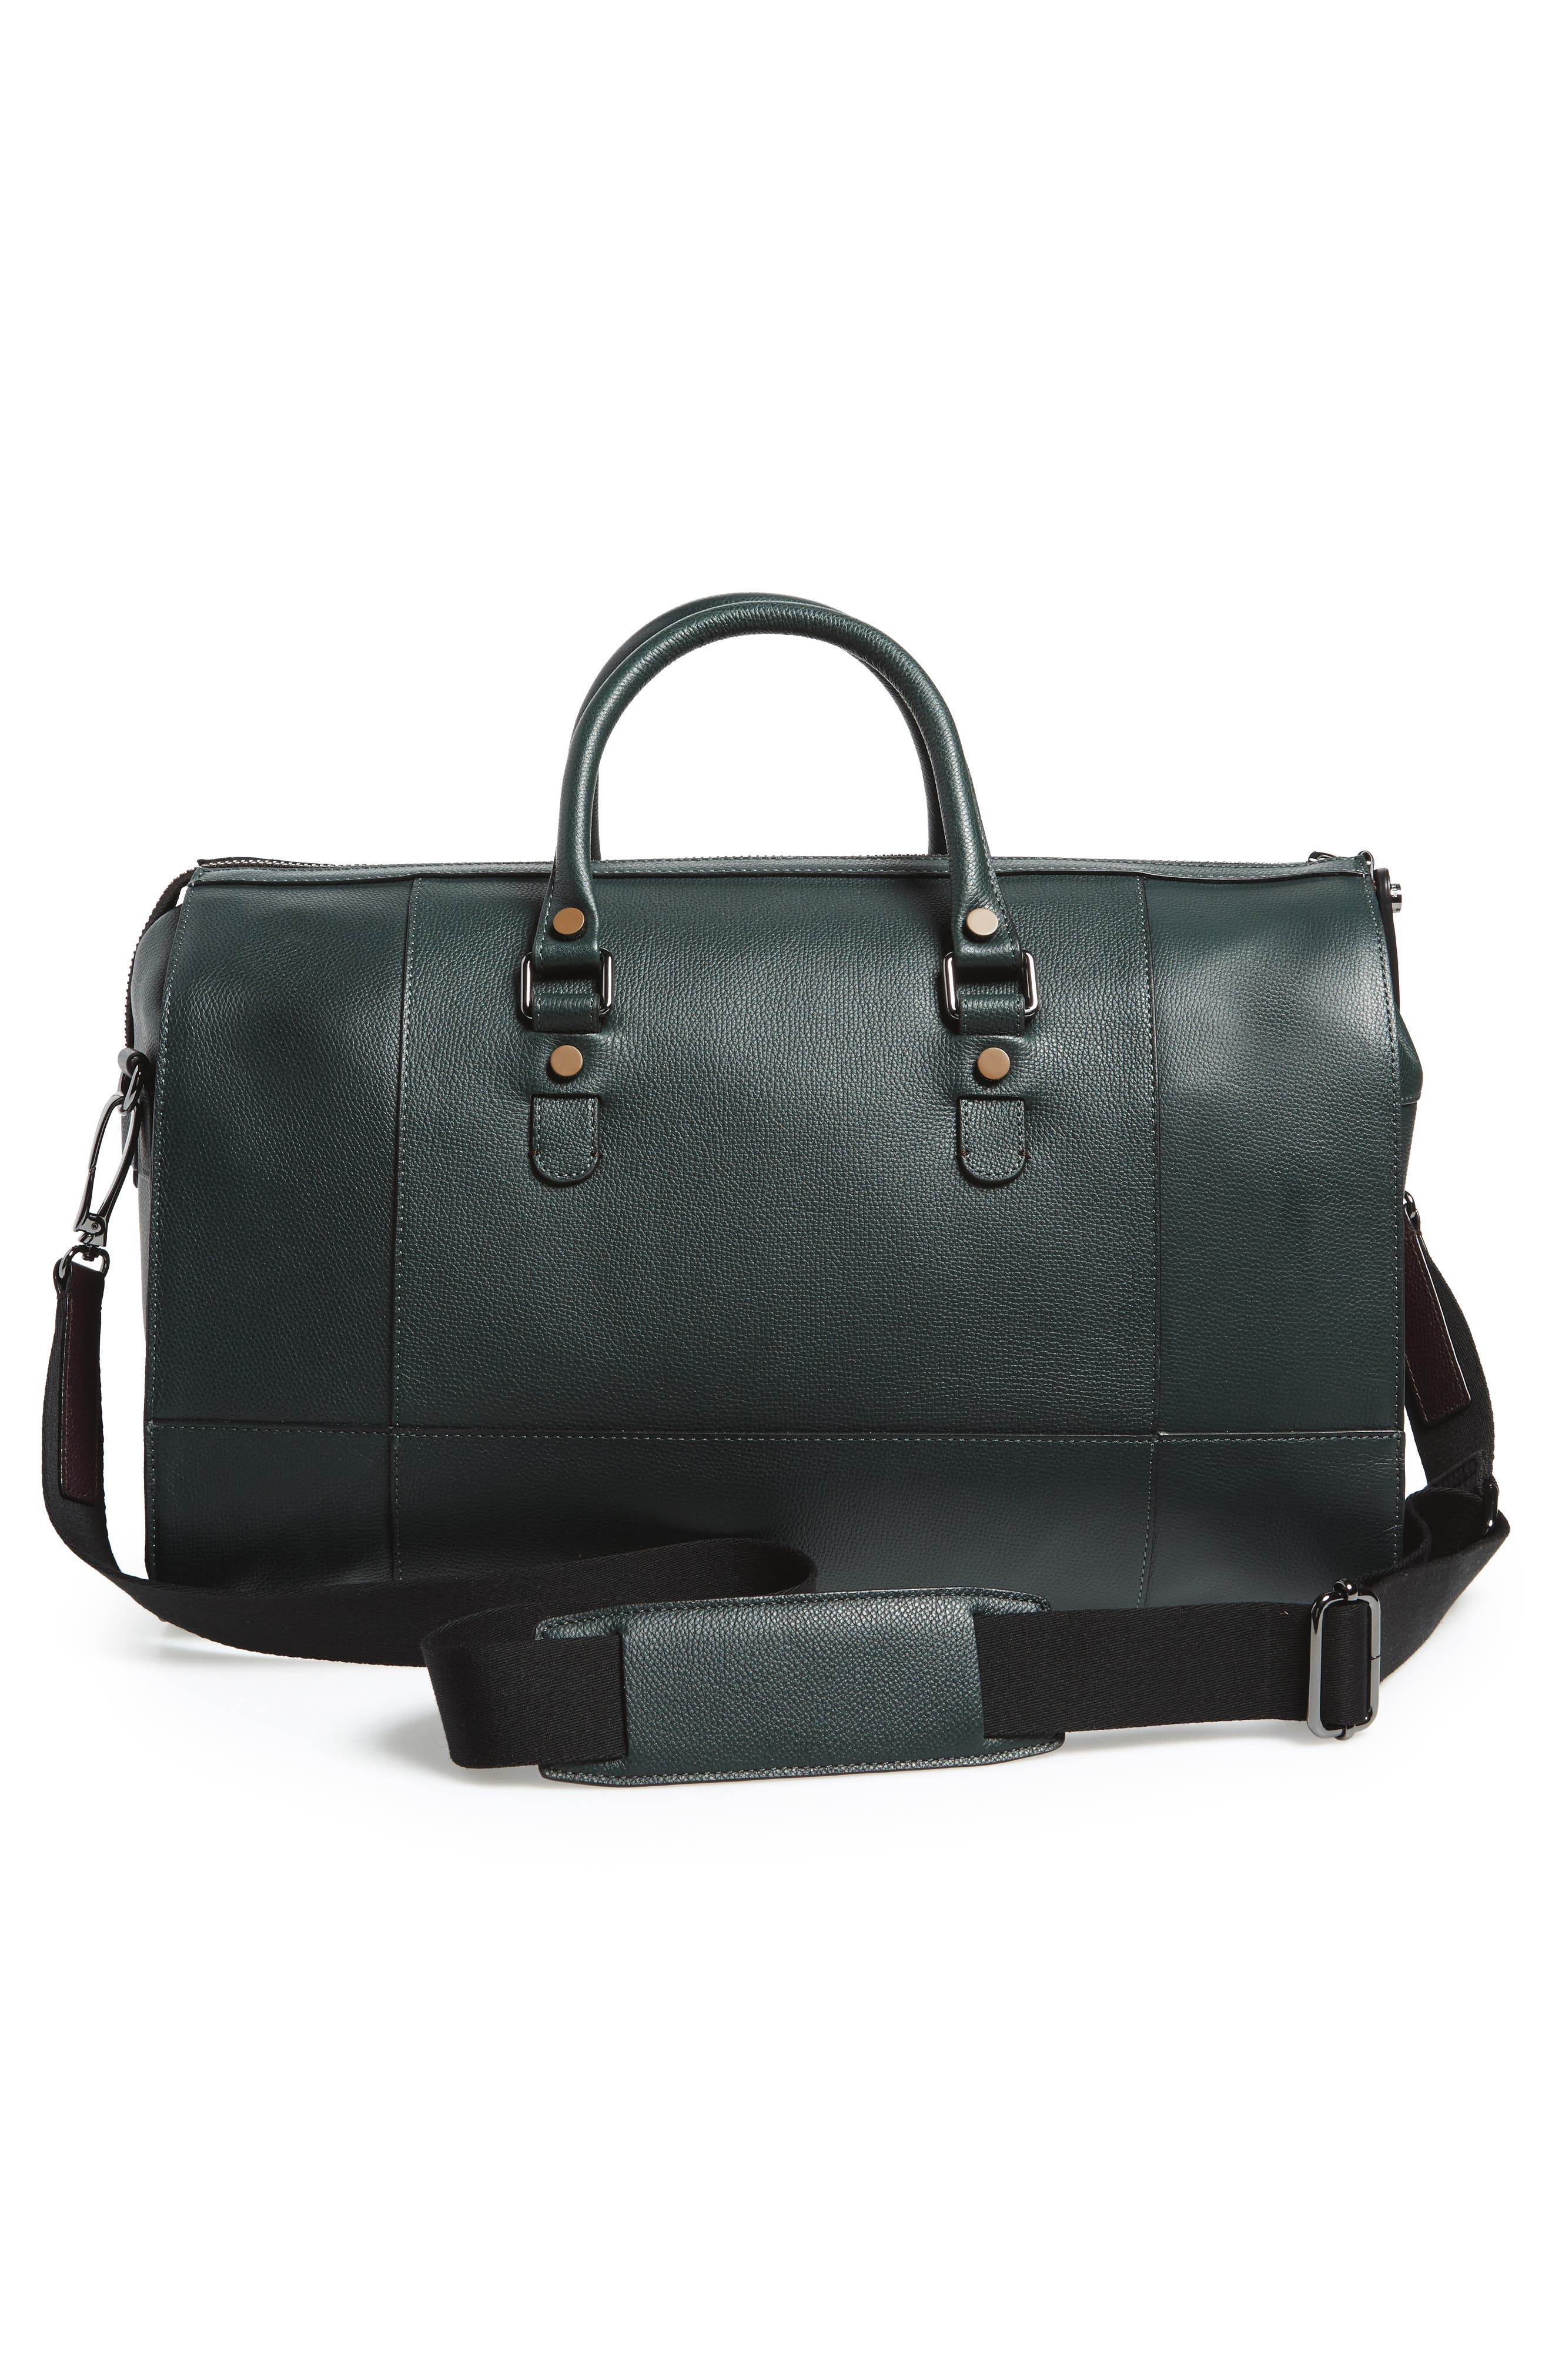 Panthea Leather Duffel Bag,                             Alternate thumbnail 3, color,                             301